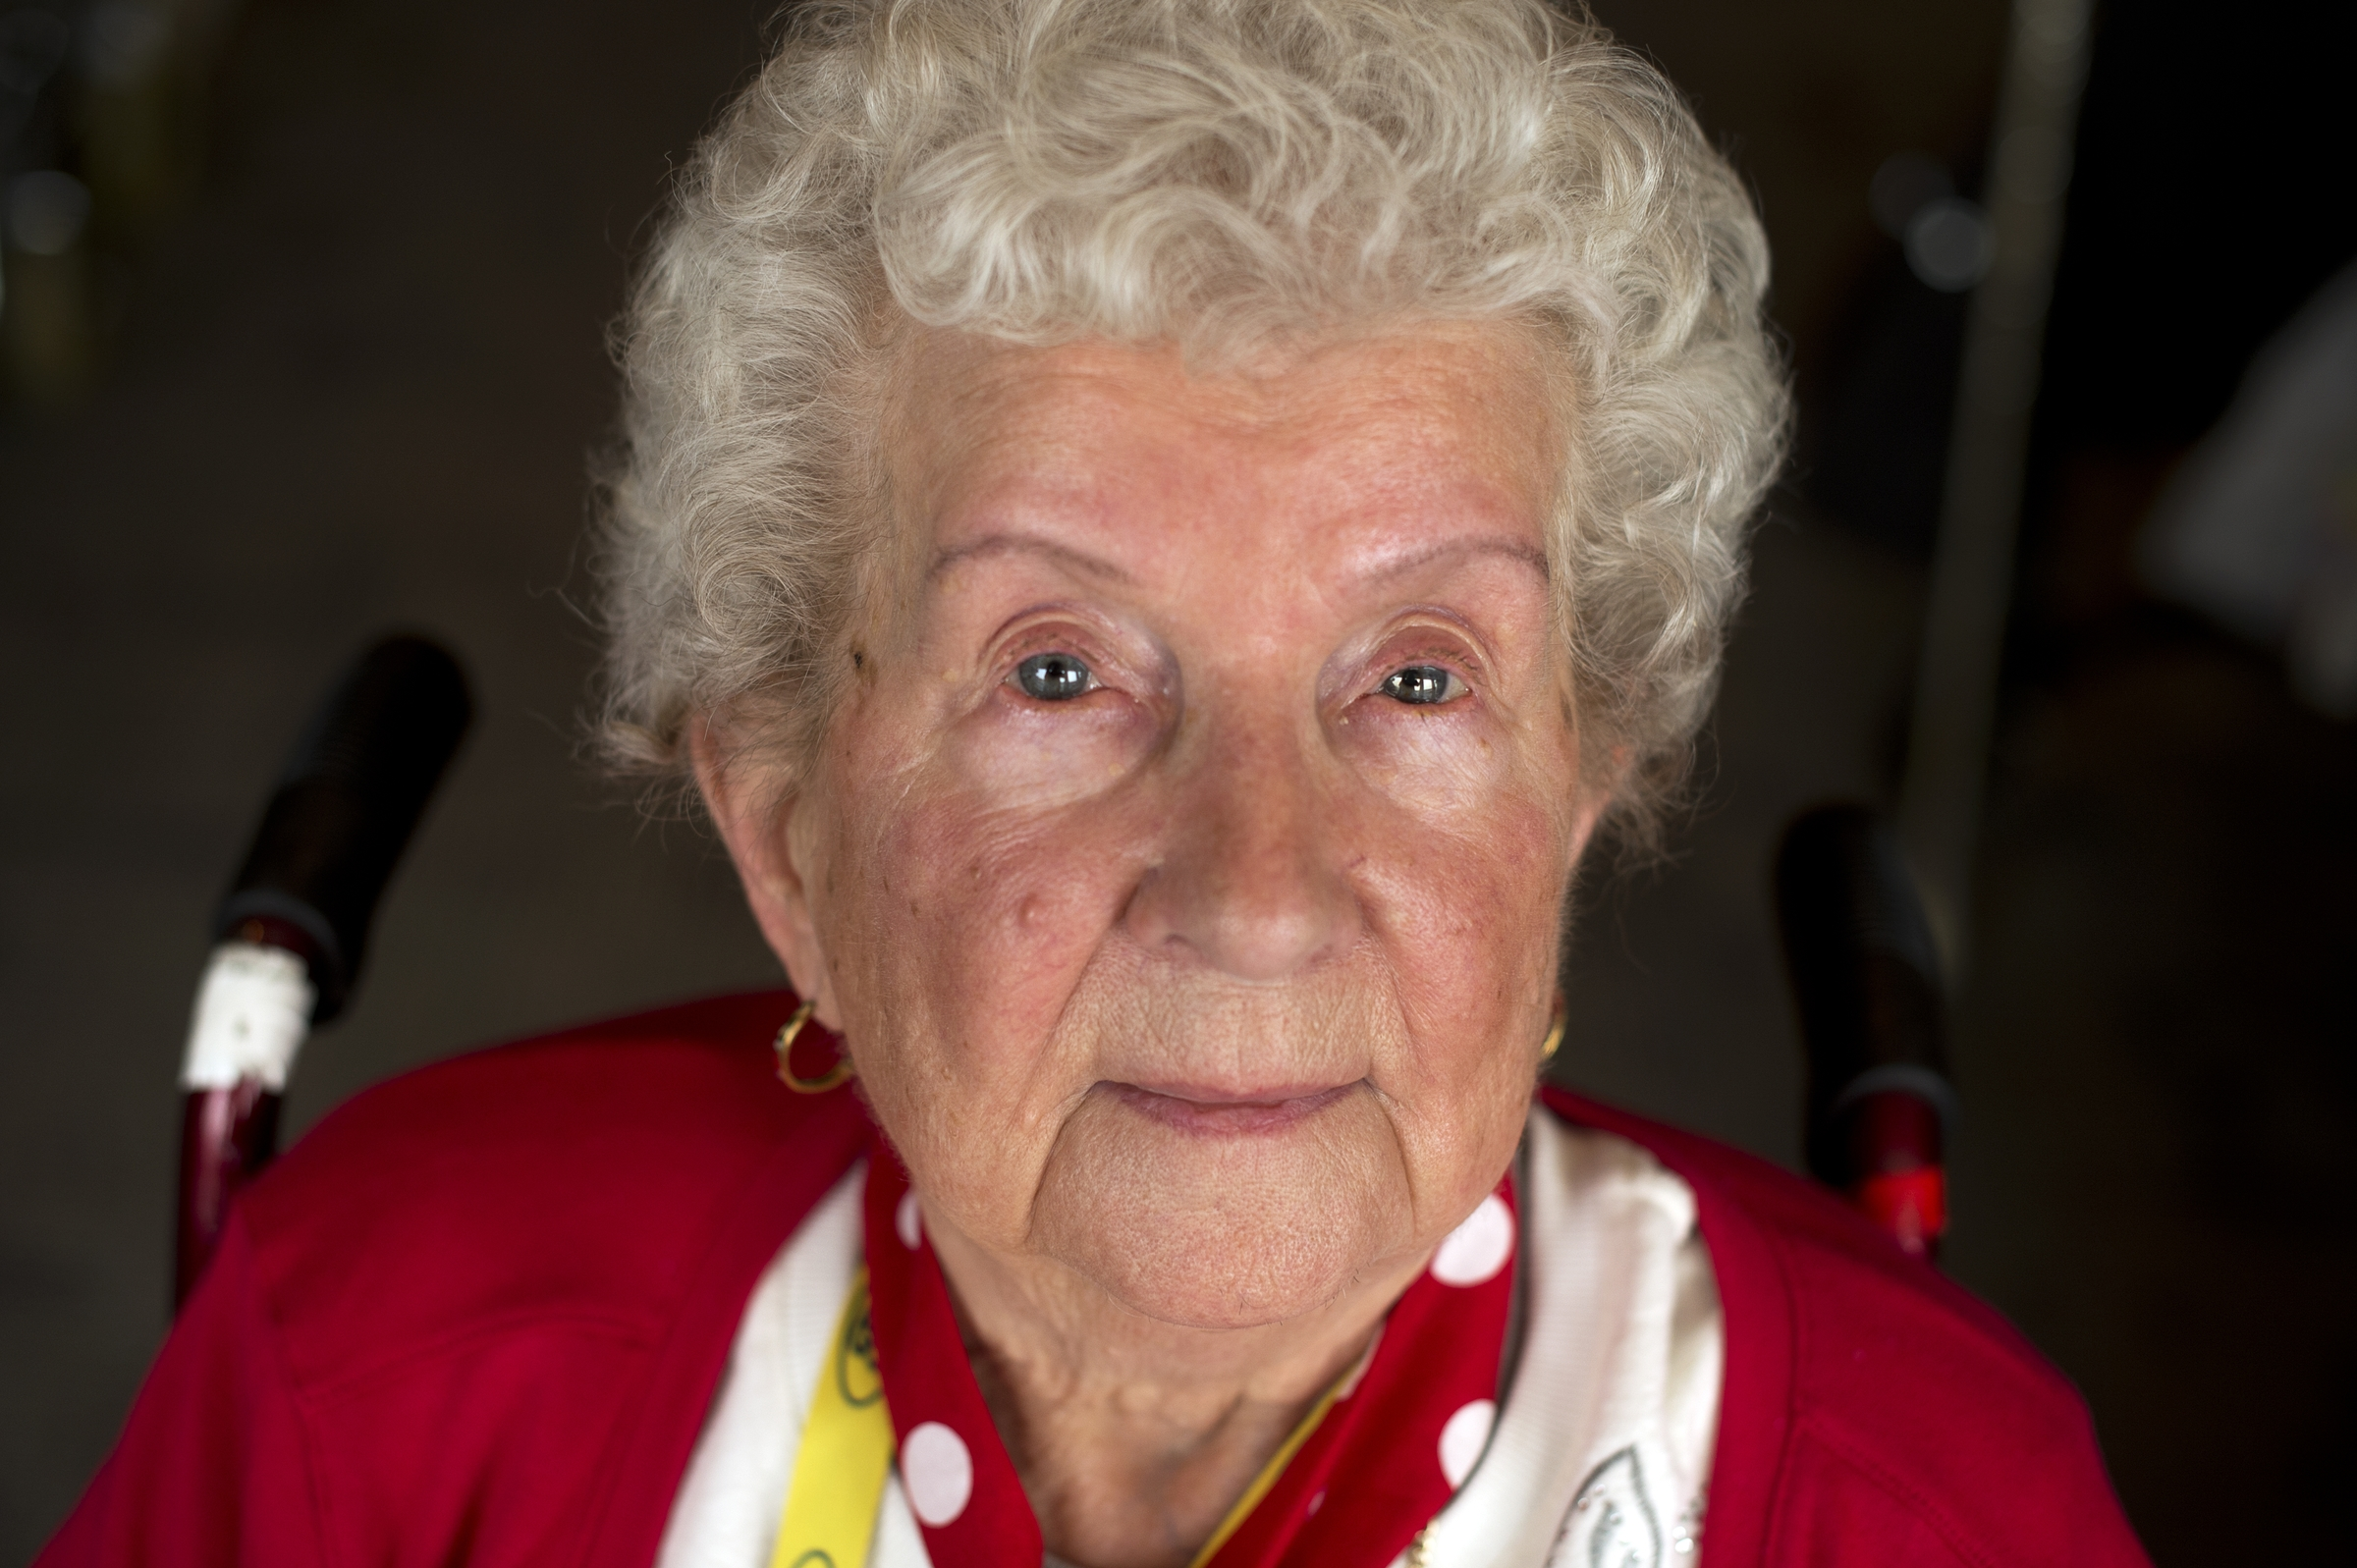 UNITED STATES - MARCH 22: Stella Sarnacki, a World War II era Rosie the Riveter, is photographed during a lunch for a group of about 30 Rosies at the Library of Congress, March 22, 2016. They were part of an Honor Flight from Detroit who were on a tour of D.C. that included stops on Capitol Hill, the World War II Memorial, and Arlington National Cemetery. (Photo By Tom Williams/CQ Roll Call)